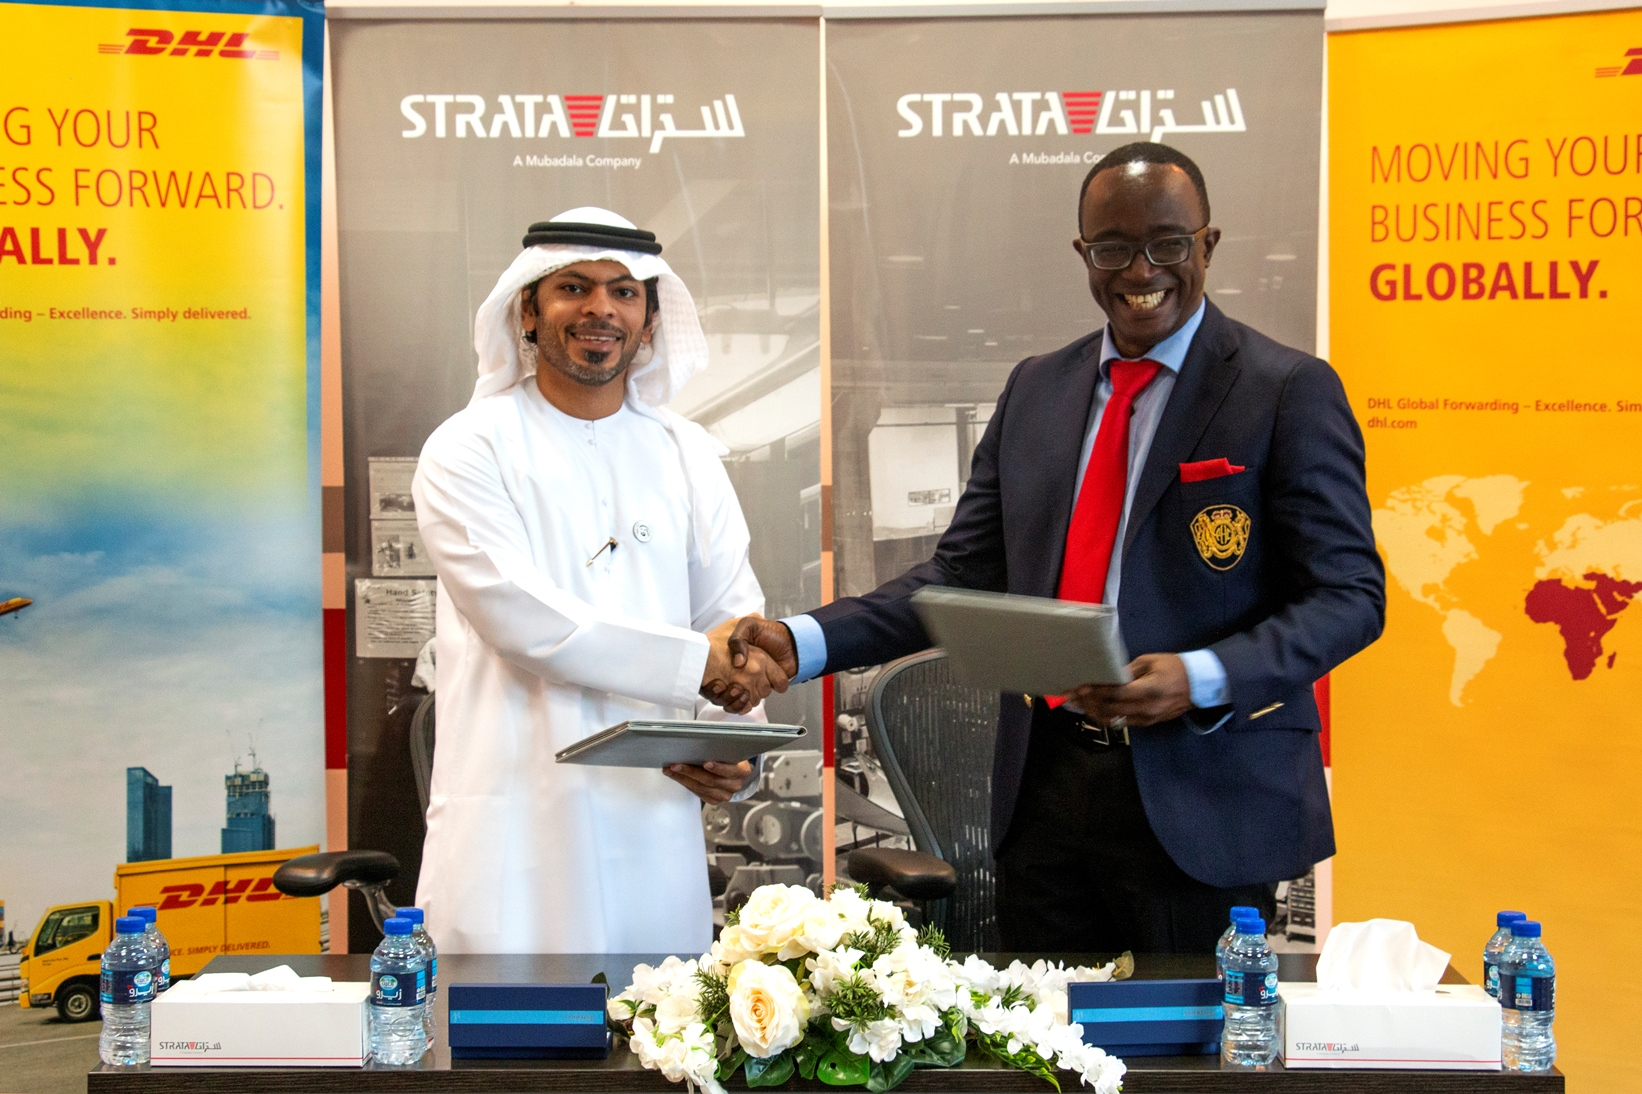 UAE's Strata Manufacturing partners with DHL Global Forwarding to